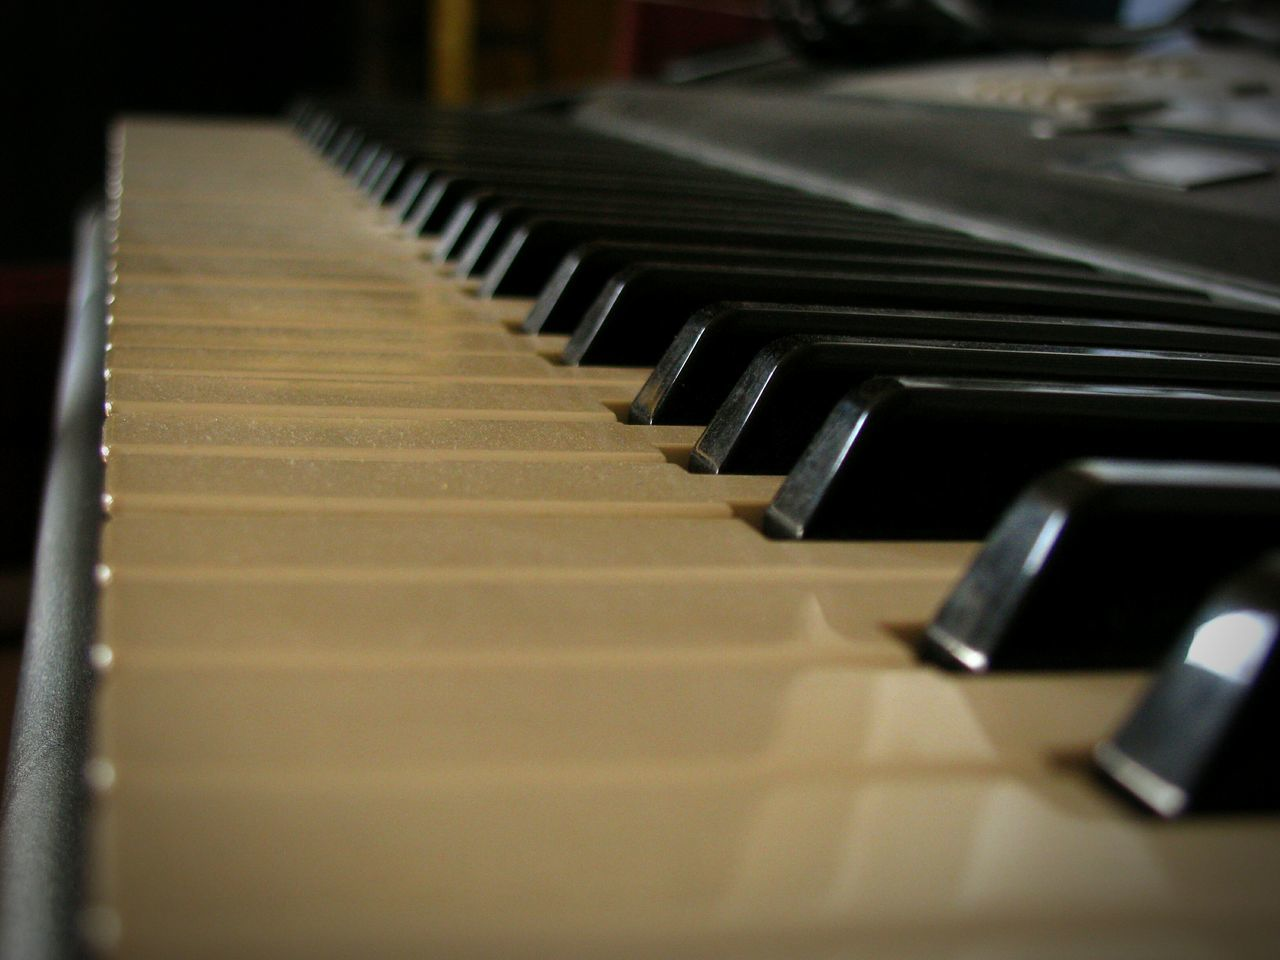 Piano Moments Piano Music Musical Instrument Piano Key Arts Culture And Entertainment Musical Equipment Keyboard Instrument Close-up In A Row No People Indoors  Keyboard Welcome To Black